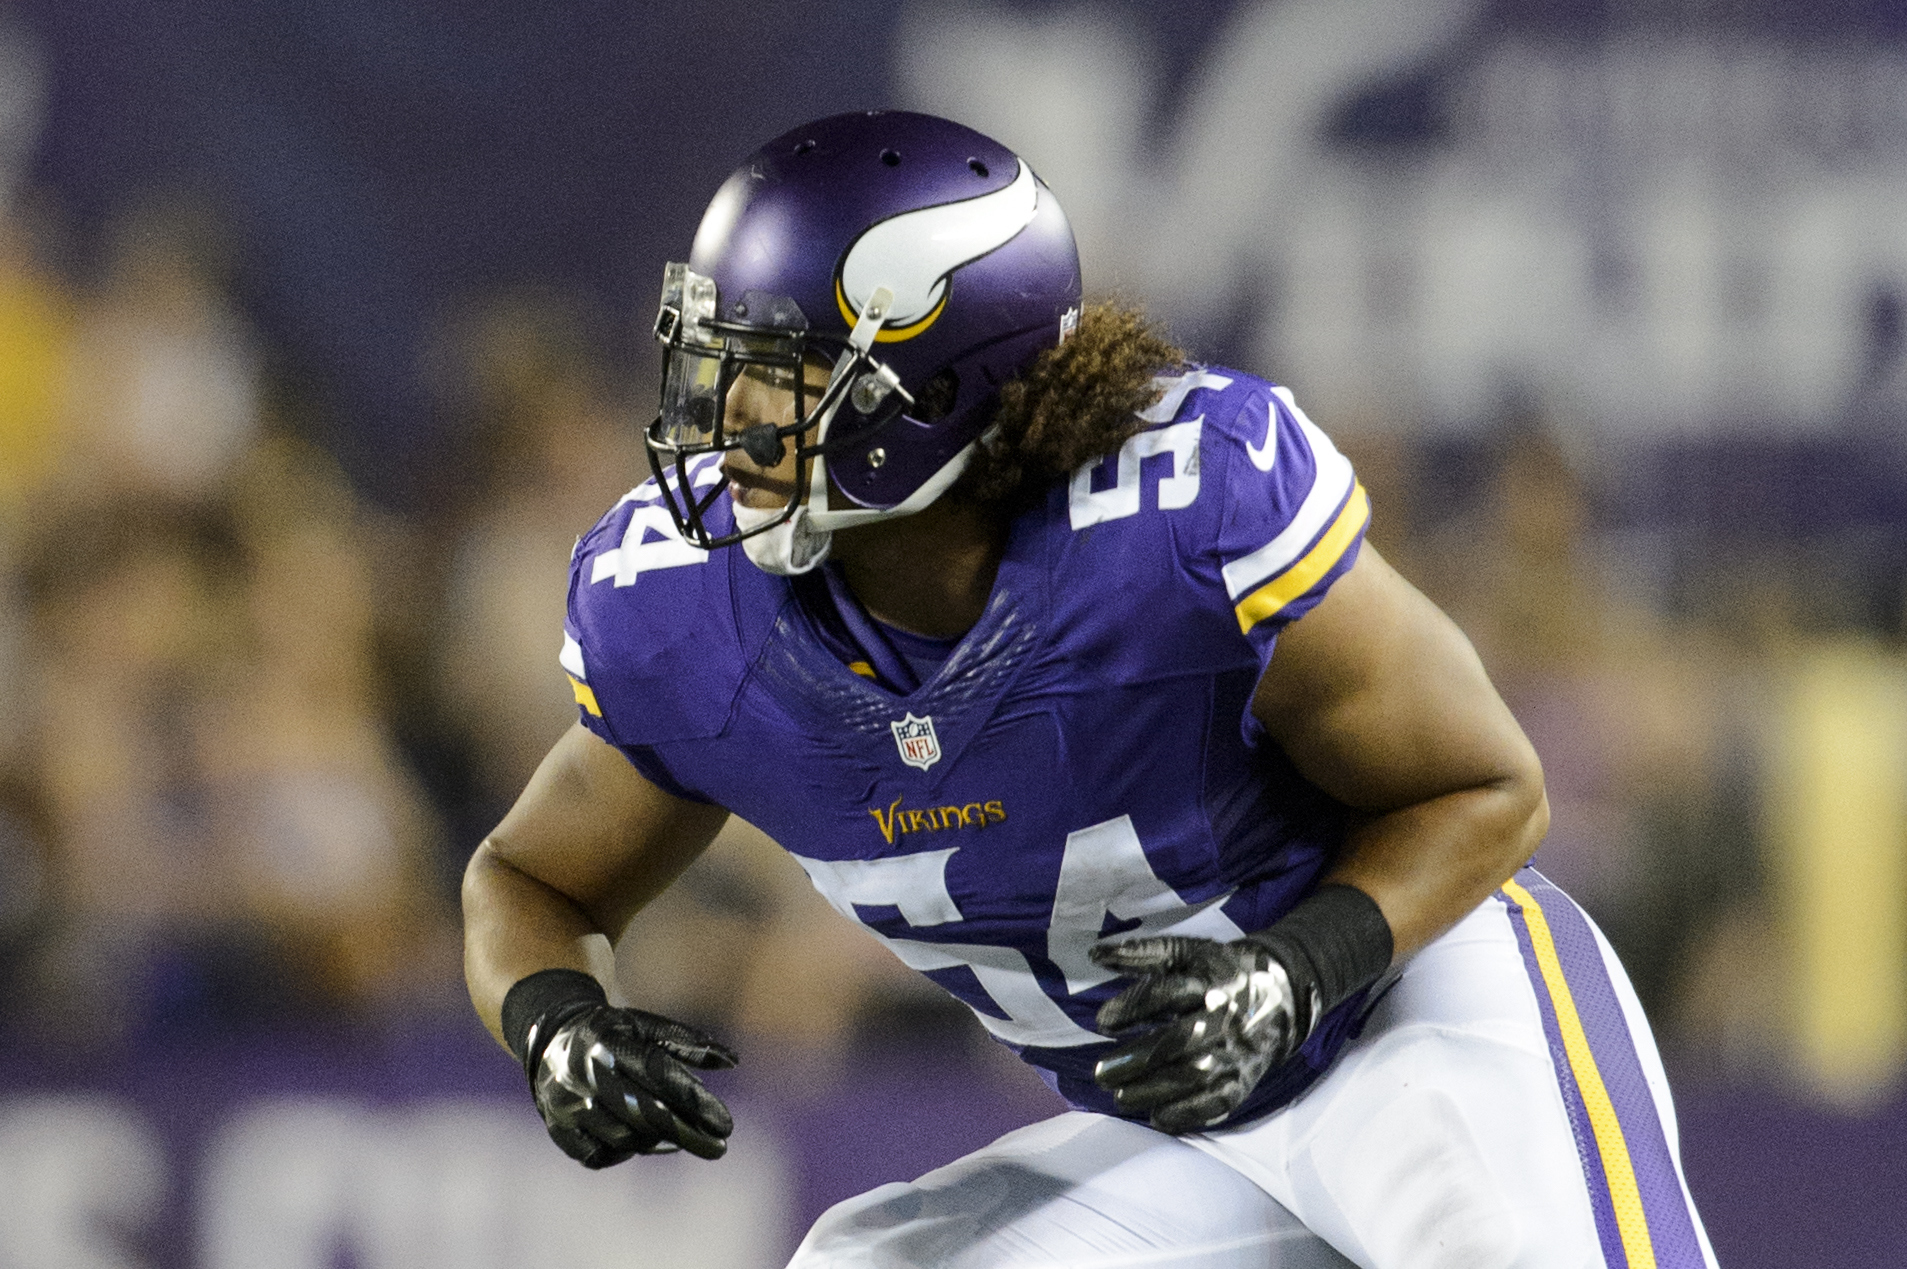 Eric Kendricks had himself a day against Tampa Bay.